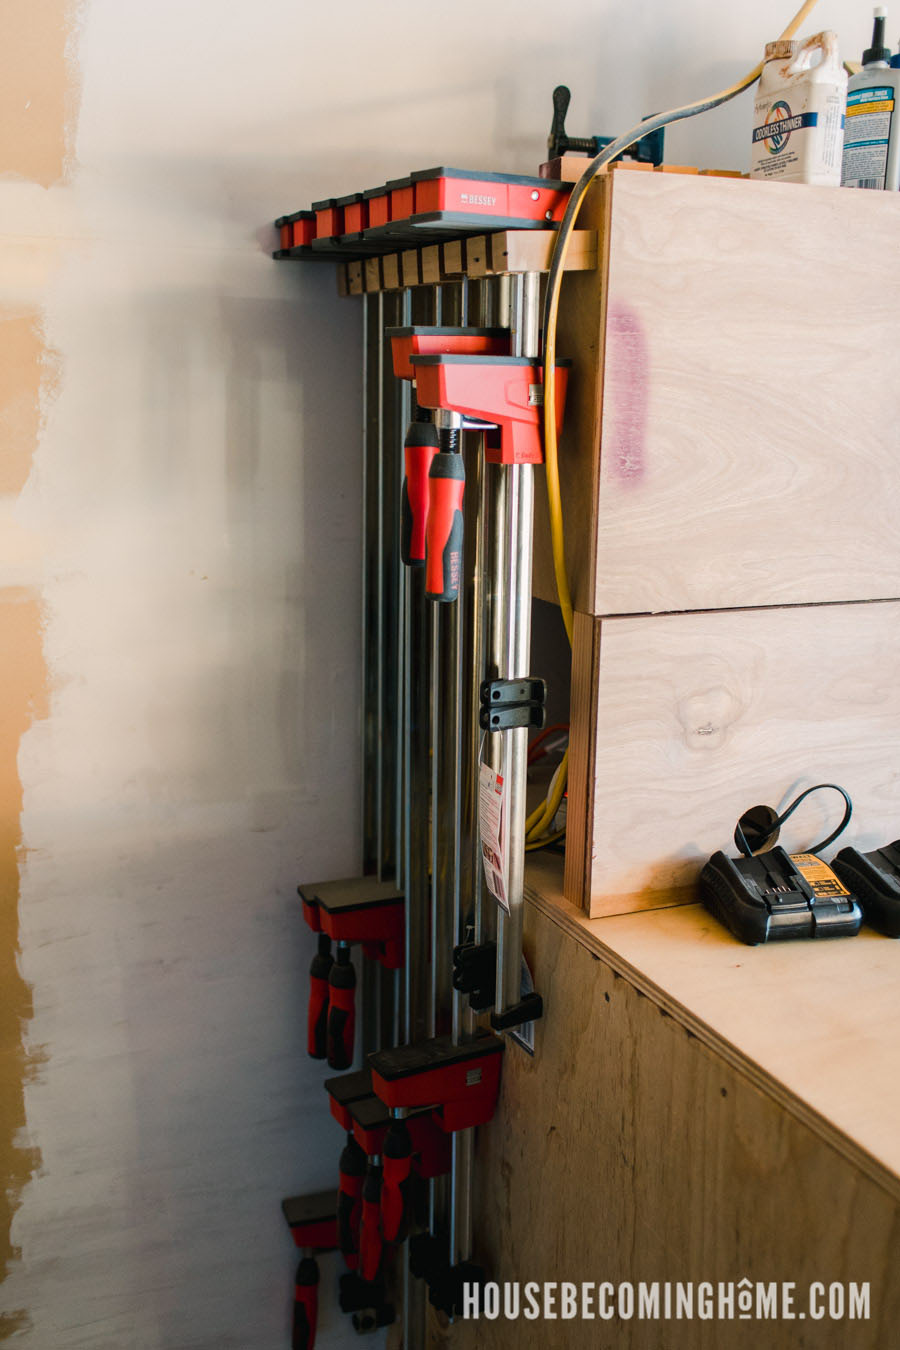 Large Clamp Storage Solution in a Small Garage